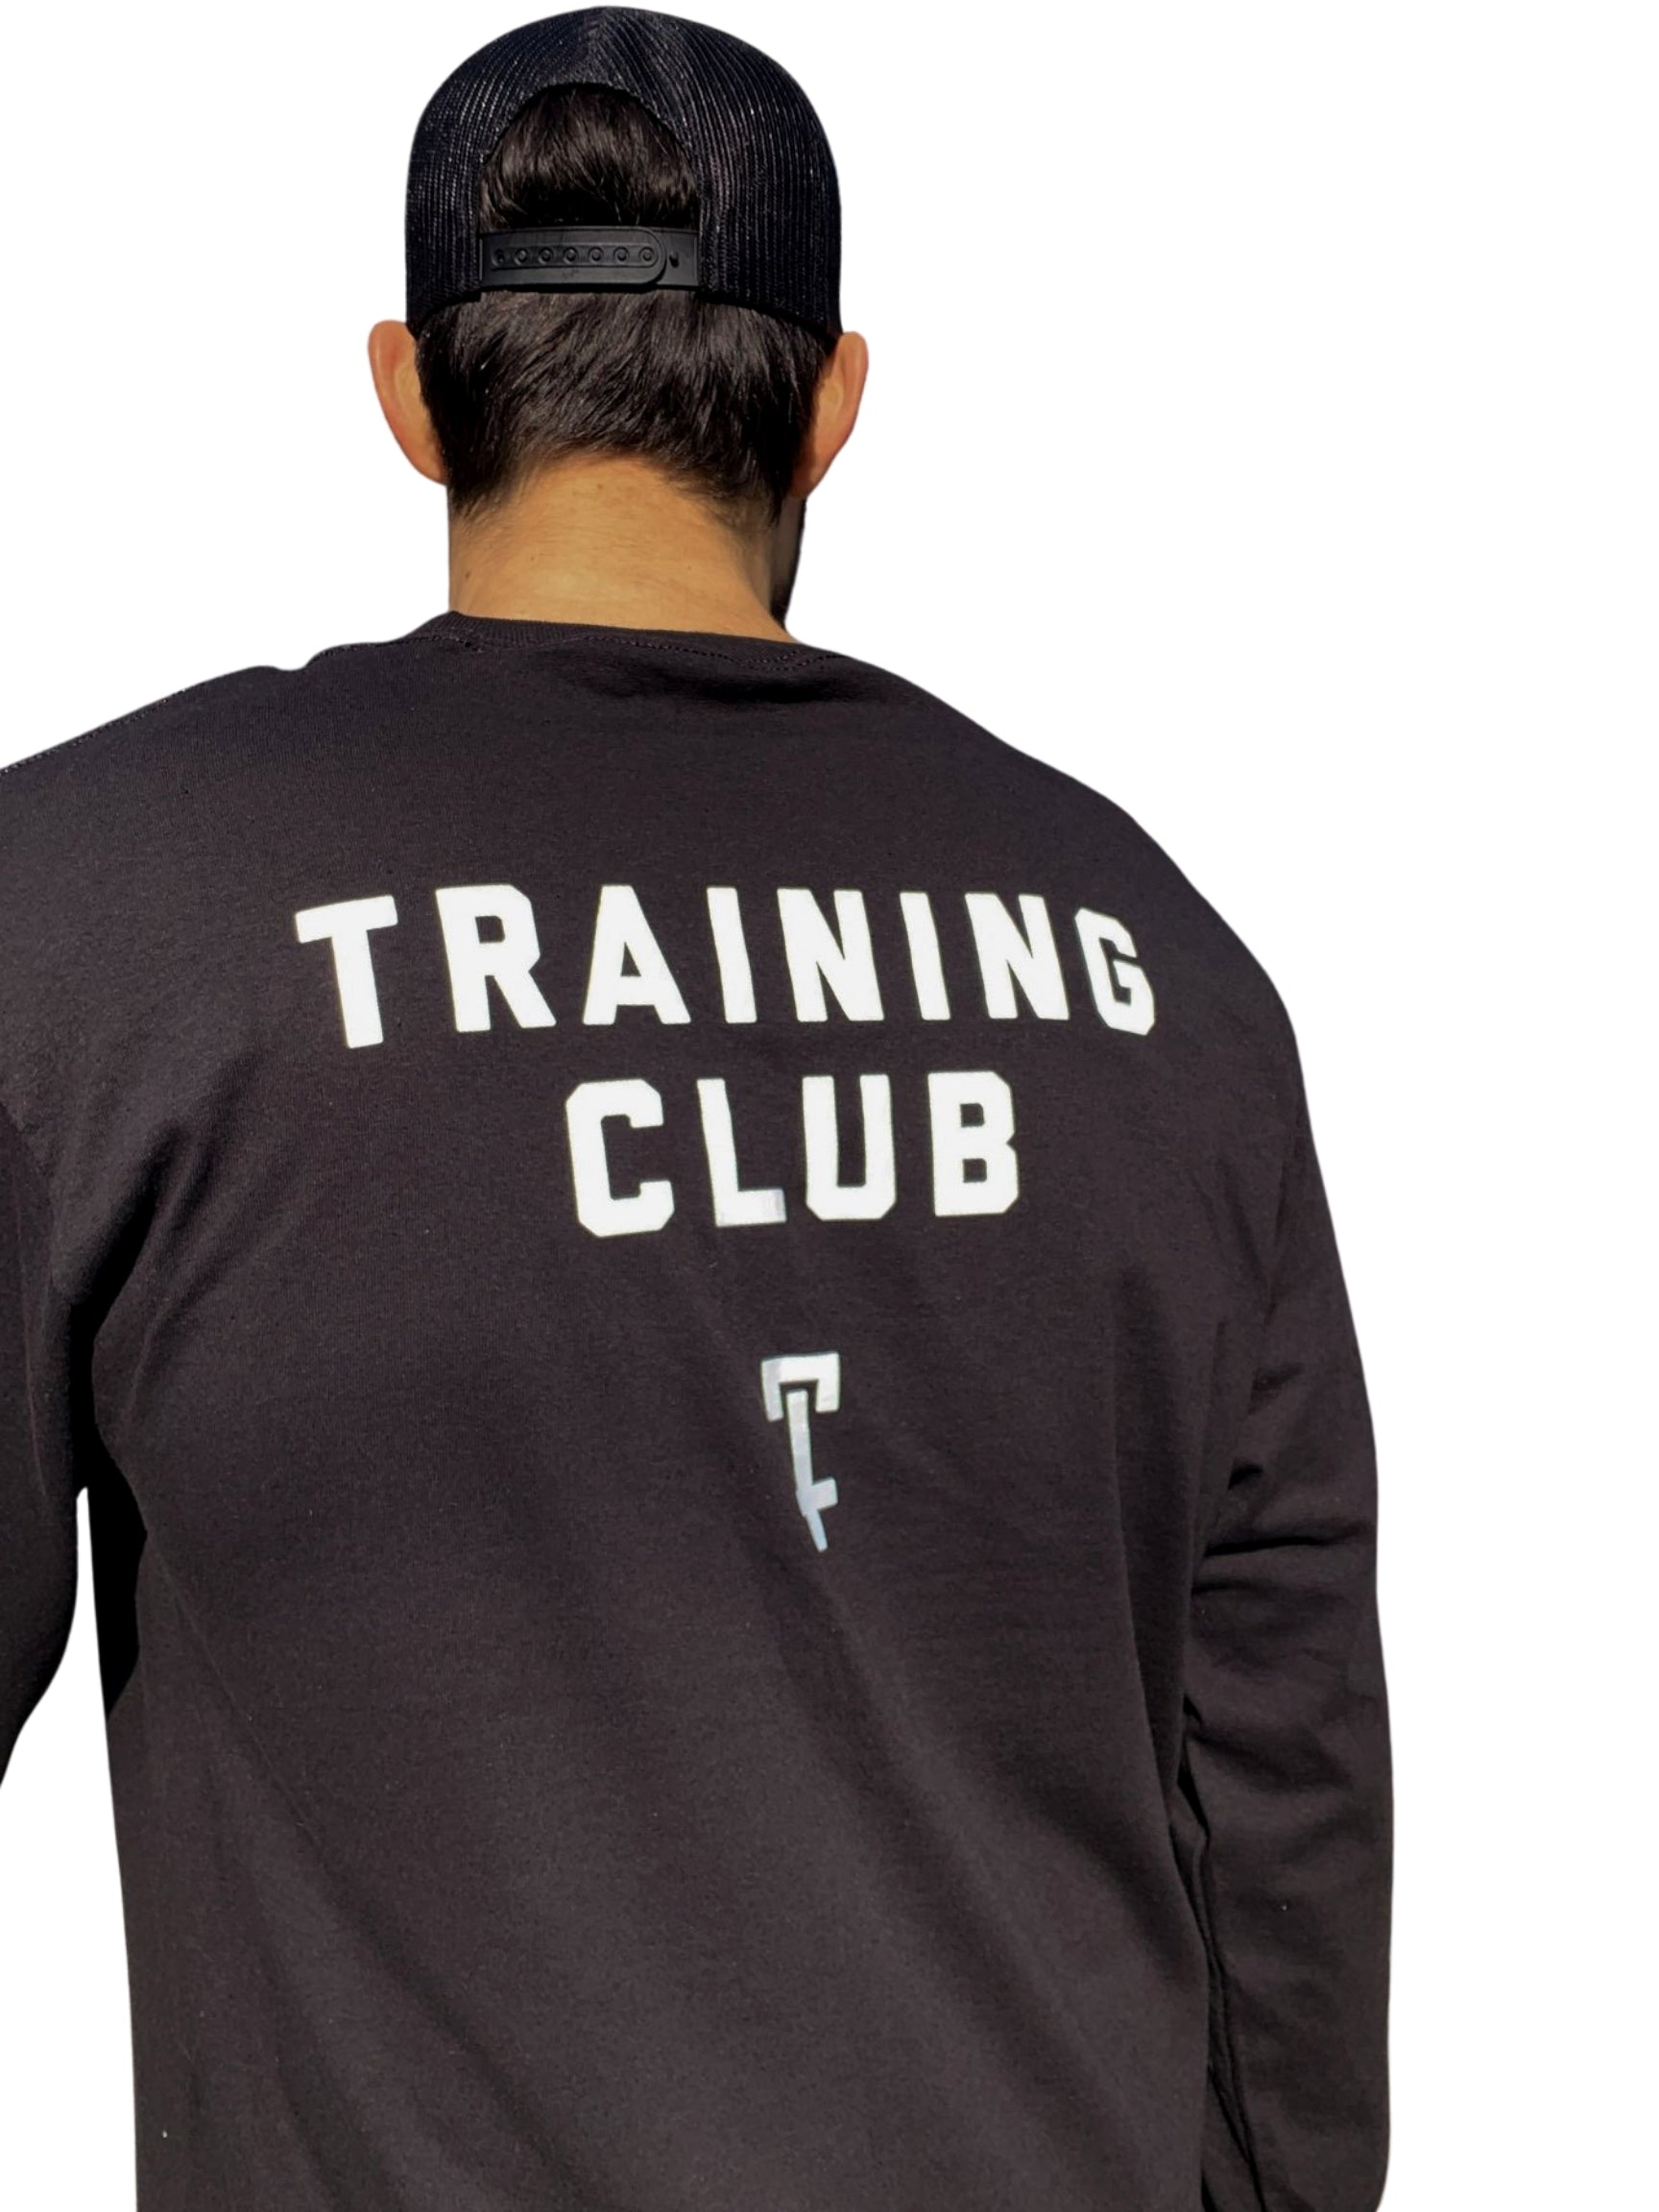 LONG SLEEVE T - TRAINING CLUB